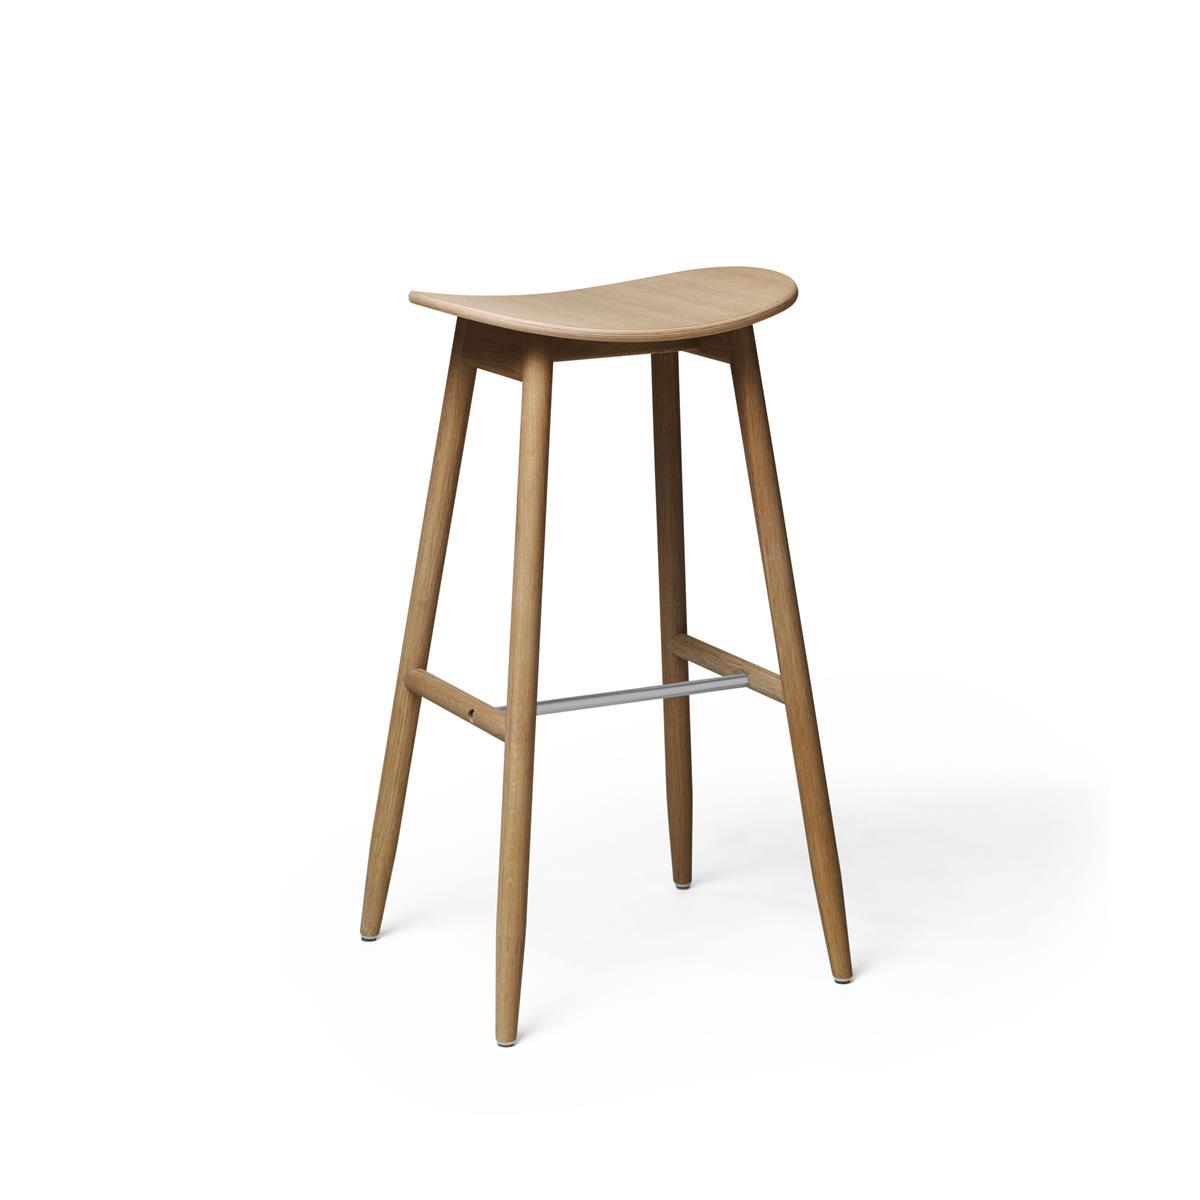 Icha Bar Stool - Natural Oak